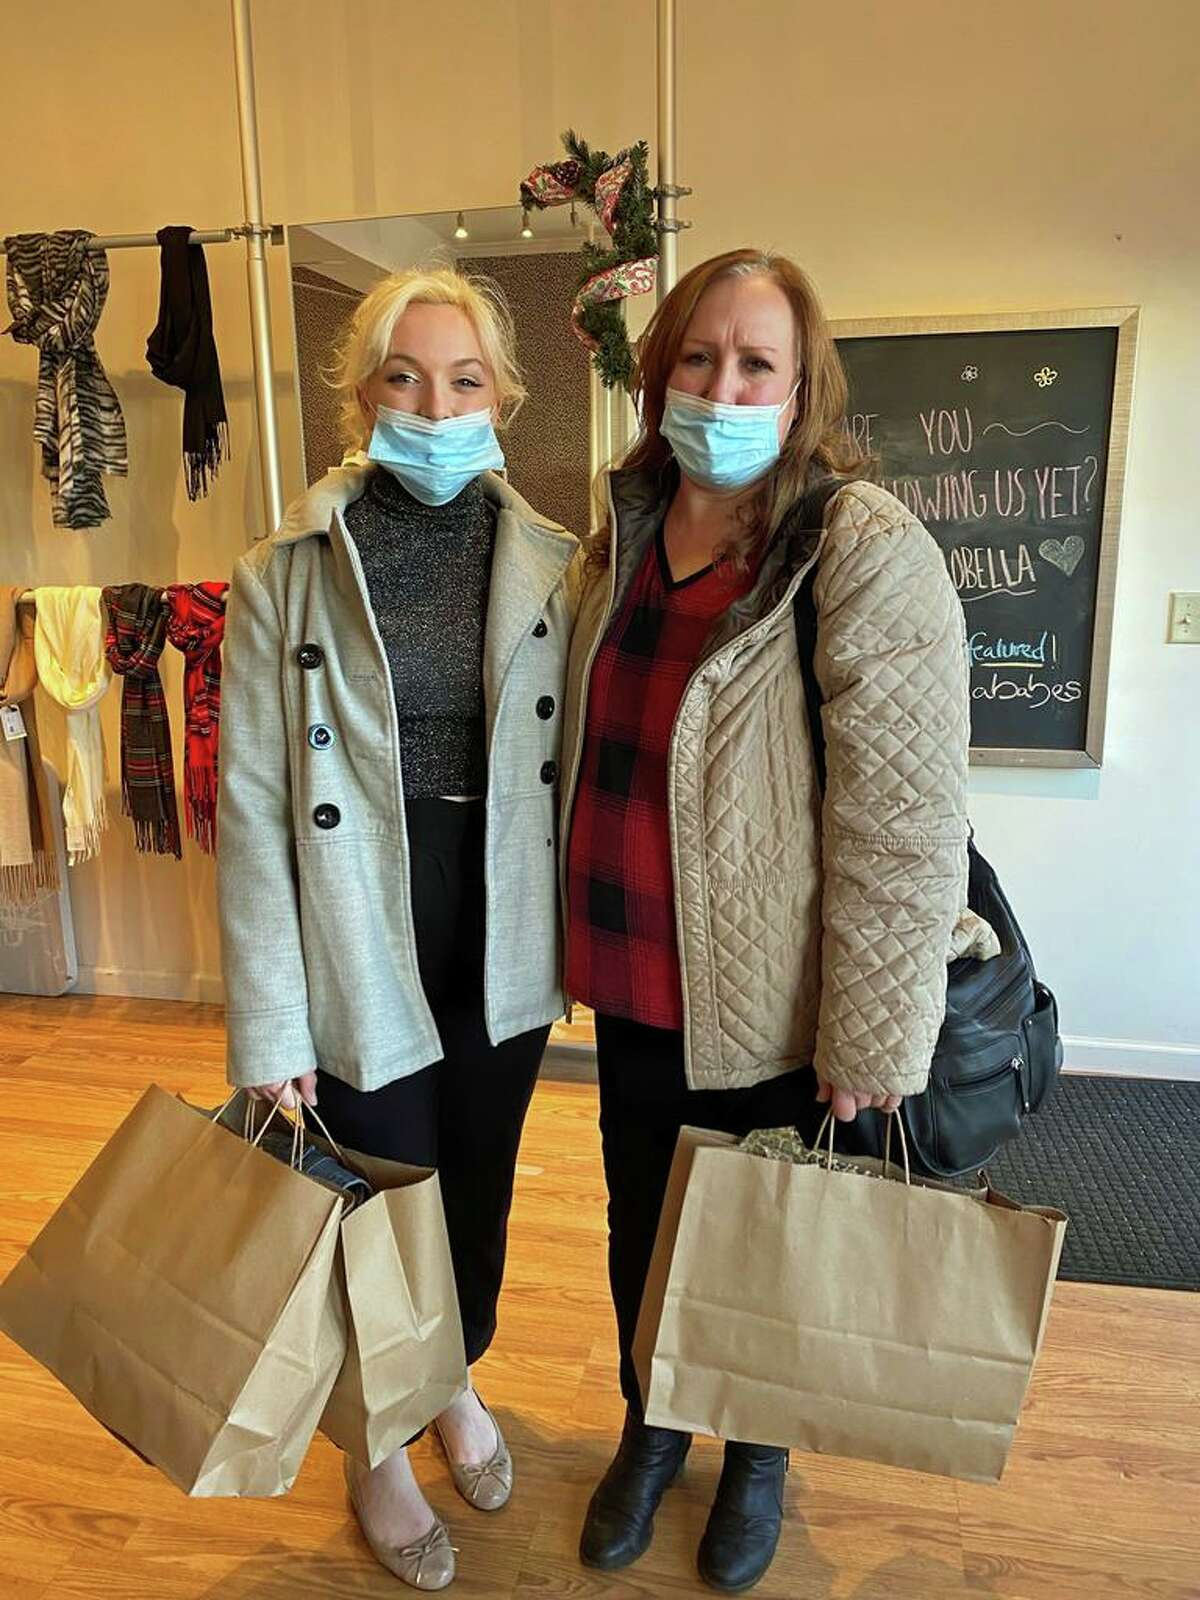 After a Christmas Eve fire displaced their family, Madeline Townsley, left, and her mother, Beth McDermott, were invited to shop at Madison's Ciao Bella for new clothes.